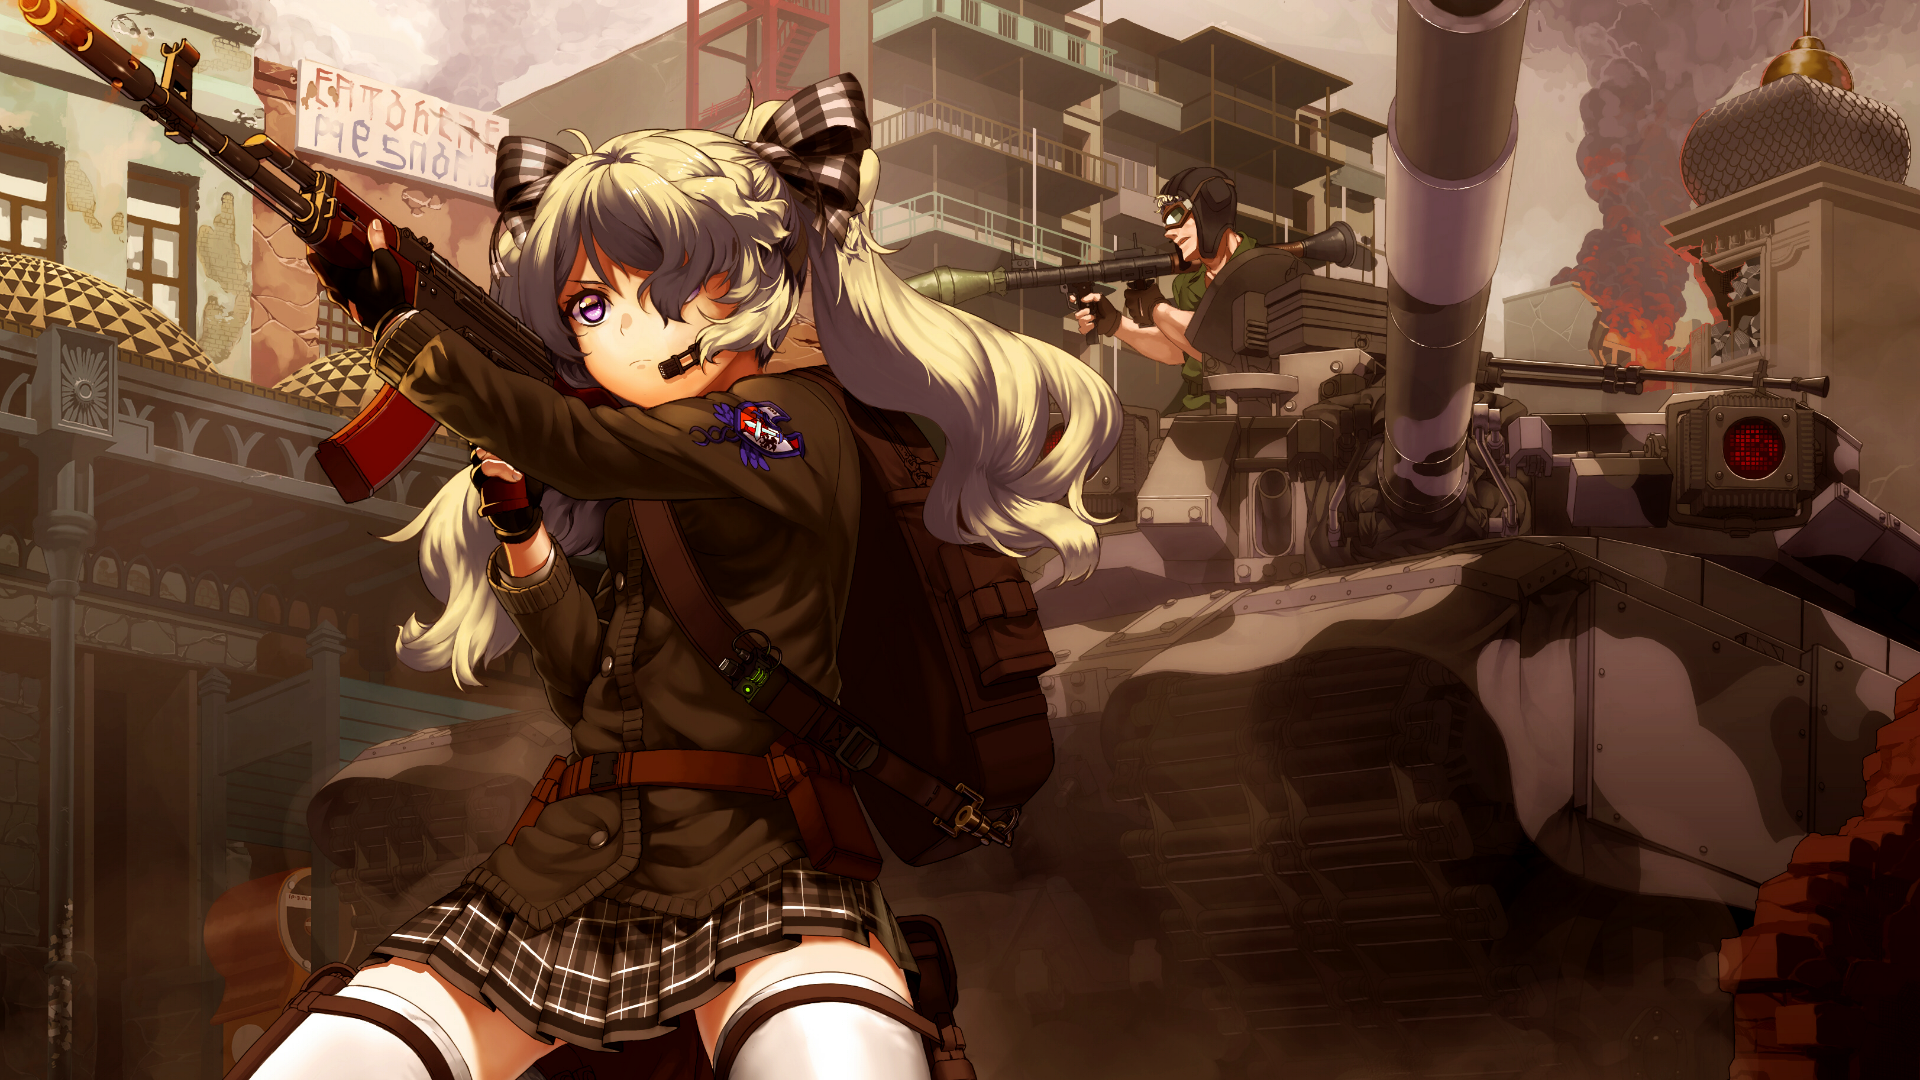 Anime-1920x1080-anime-girls-anime-weapon-tank-AK-original-characters-gun-military-skirt-wallpaper-wpc9002250